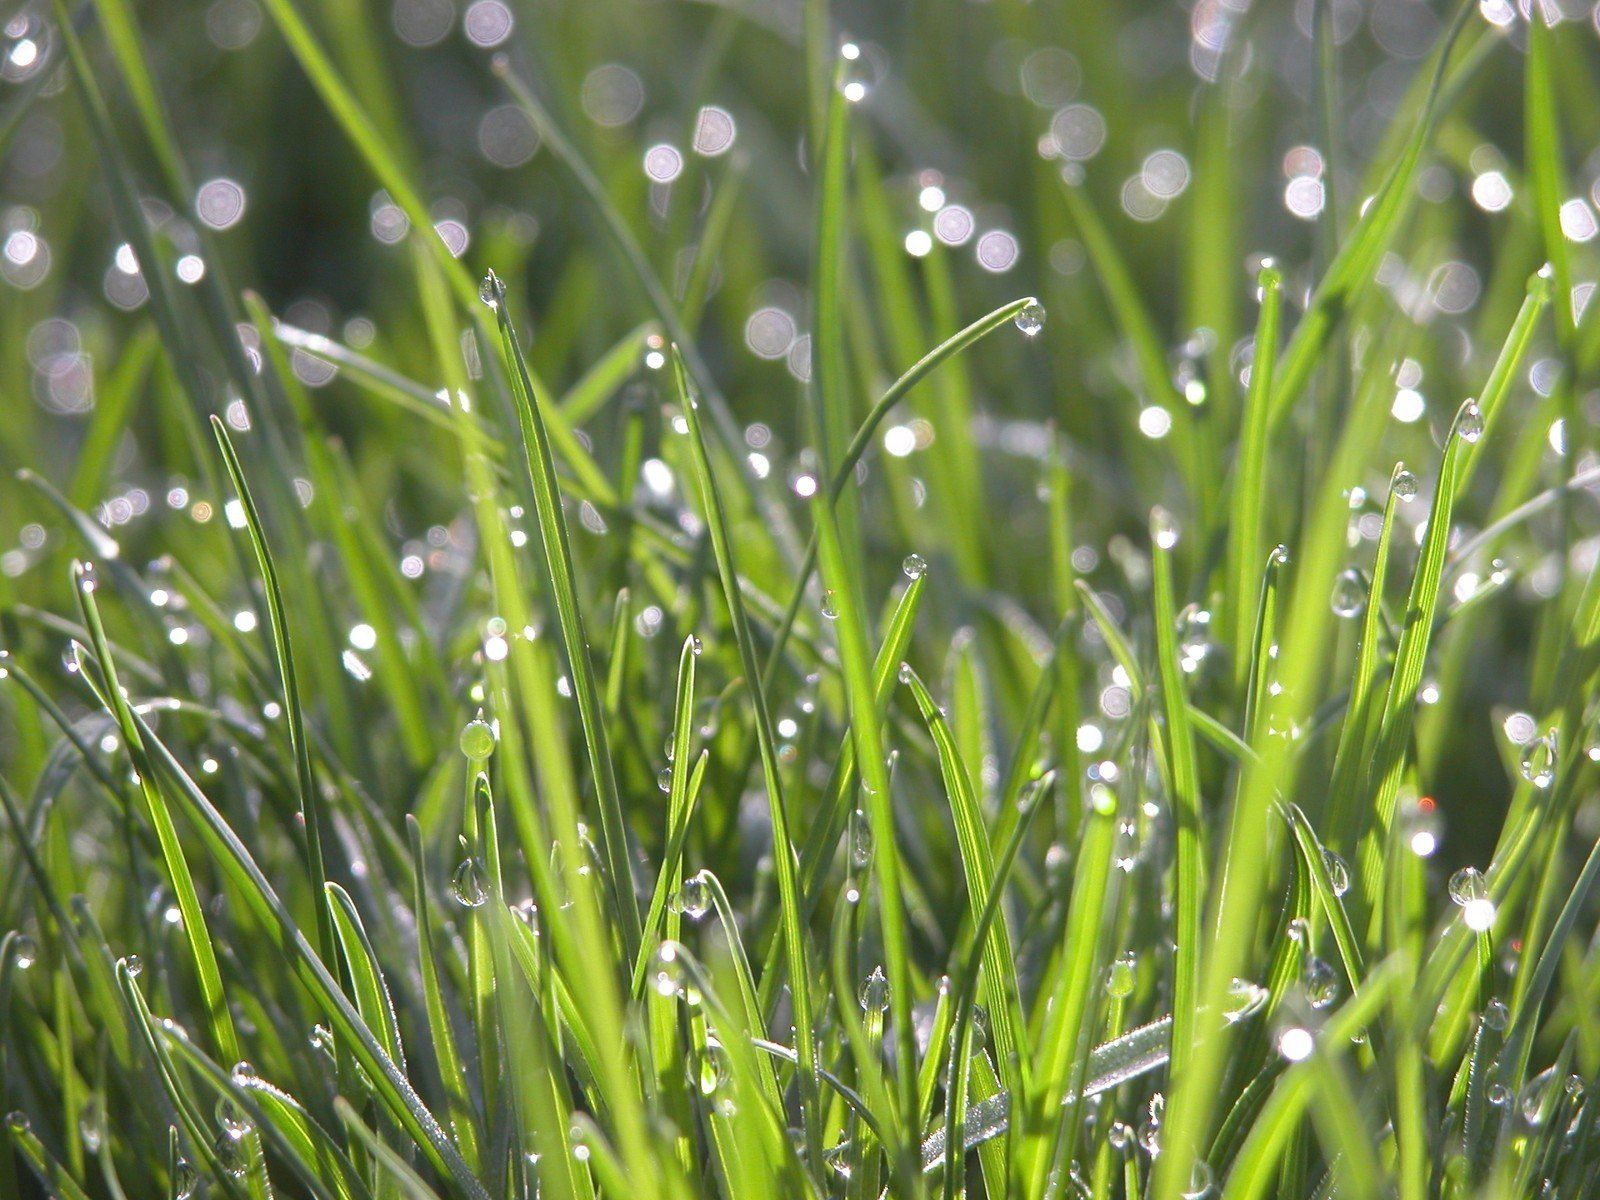 dew-on-grass-1369328